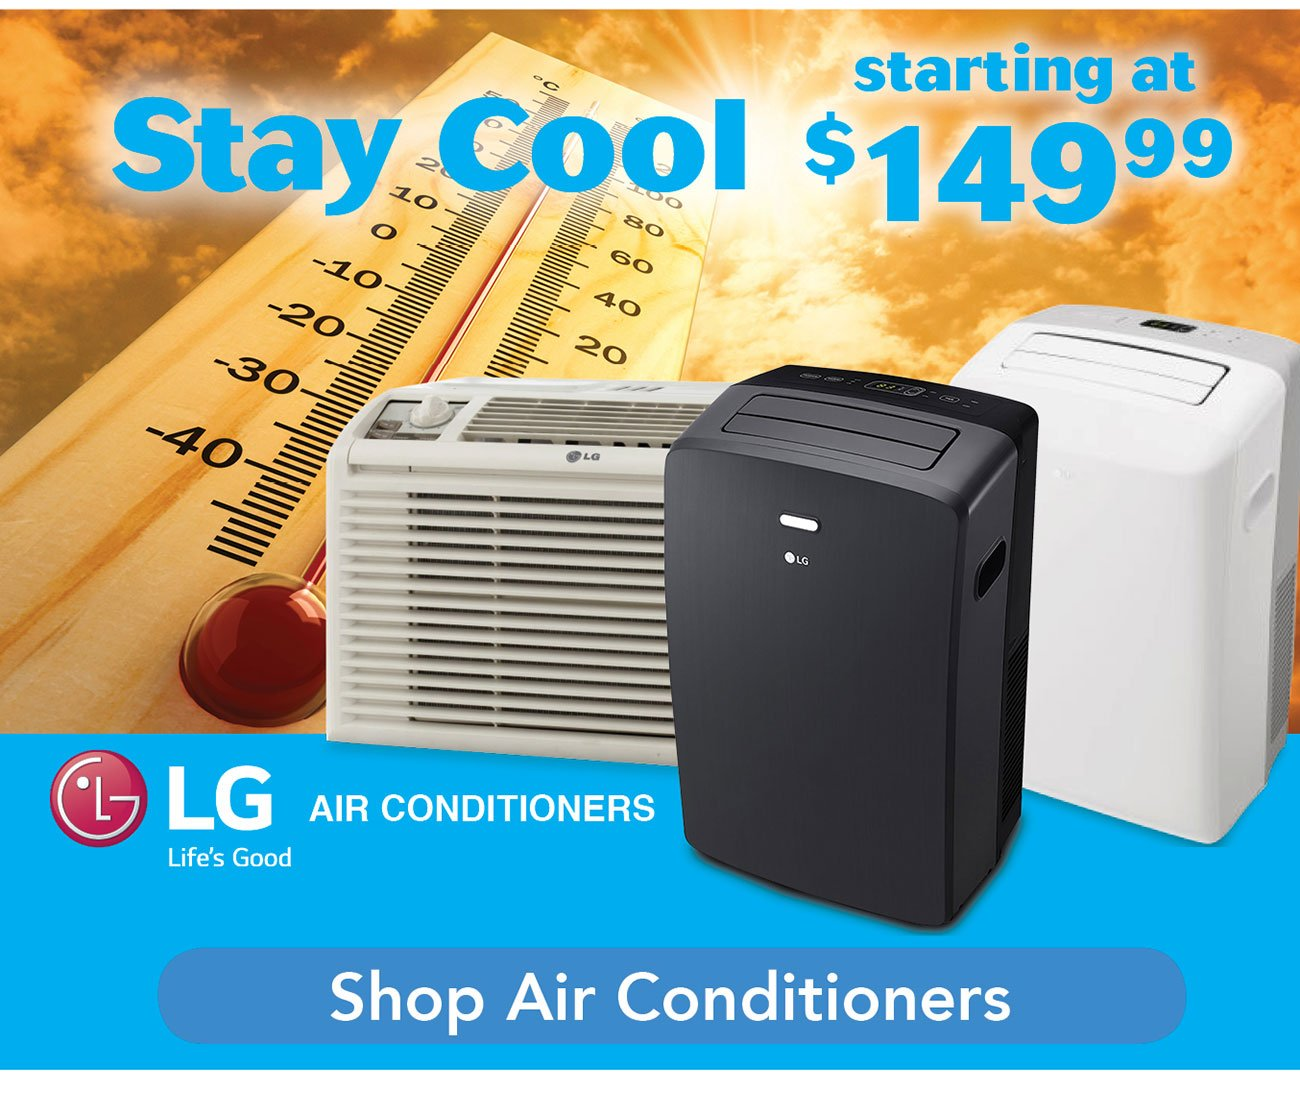 Shop-Air-Conditioners